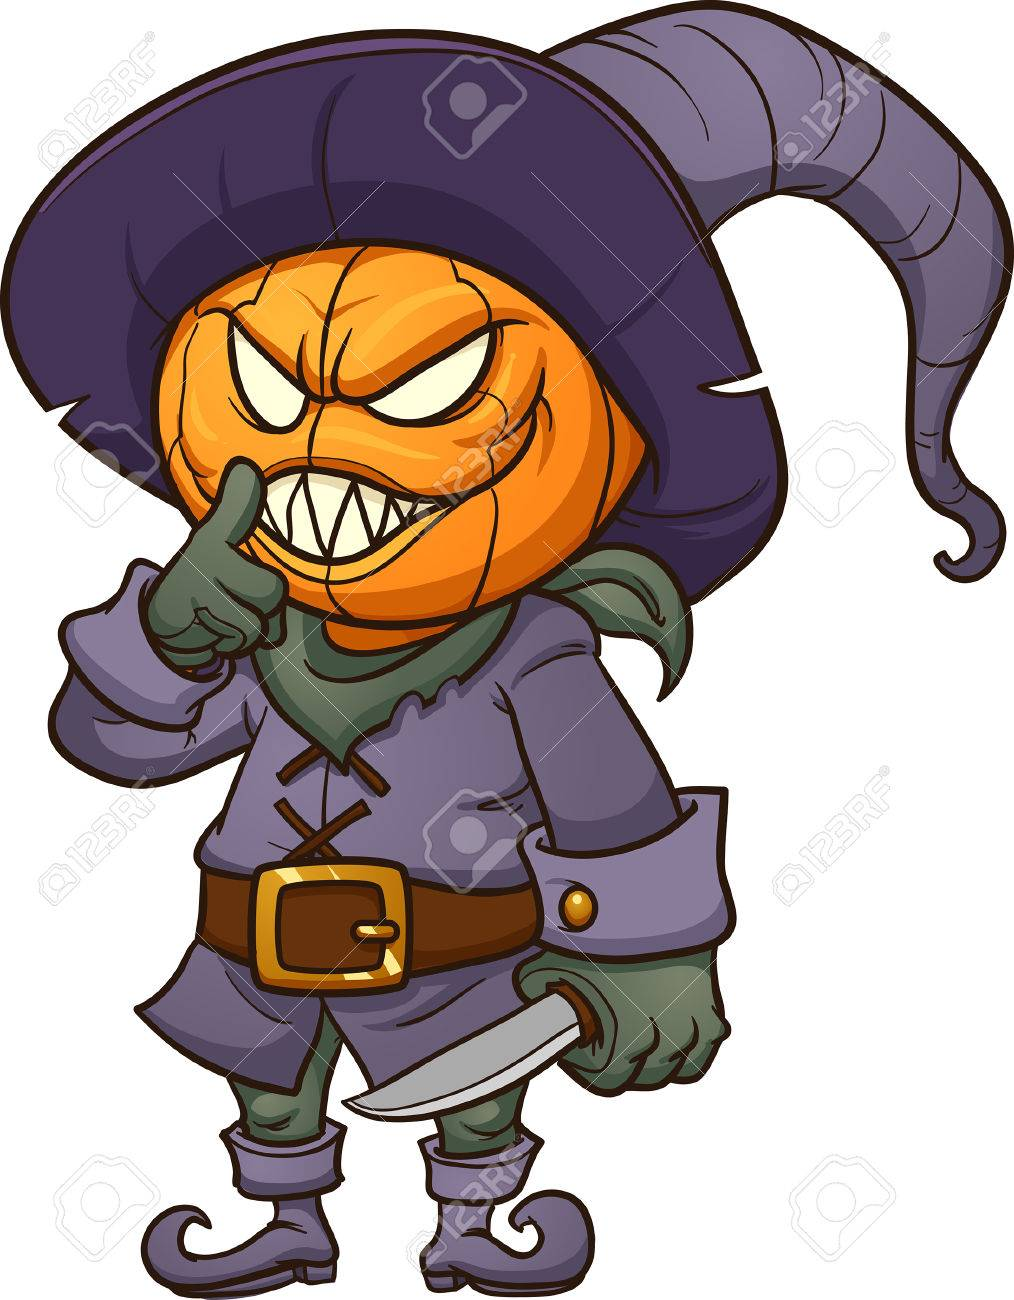 Halloween Scary Clipart.Scary Halloween Monster Vector Clip Art Illustration With Simple Royalty Free Cliparts Vectors And Stock Illustration Image 69777422